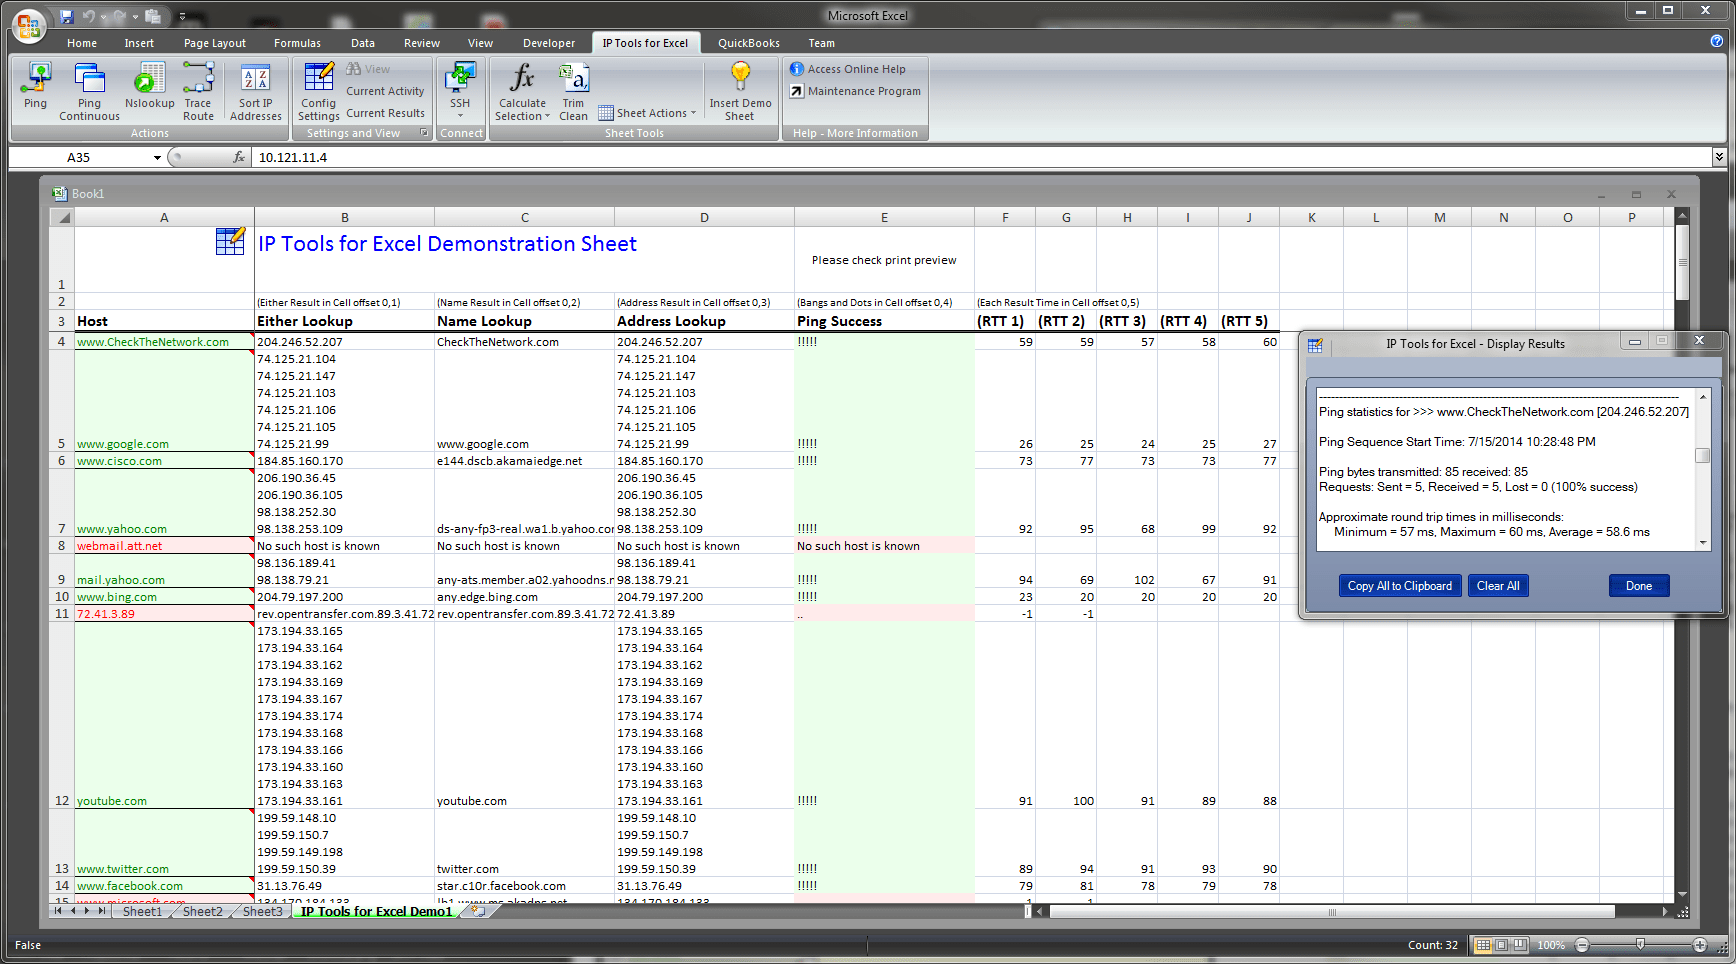 Check The Network - IP Tools for Excel Addin / Plug-in